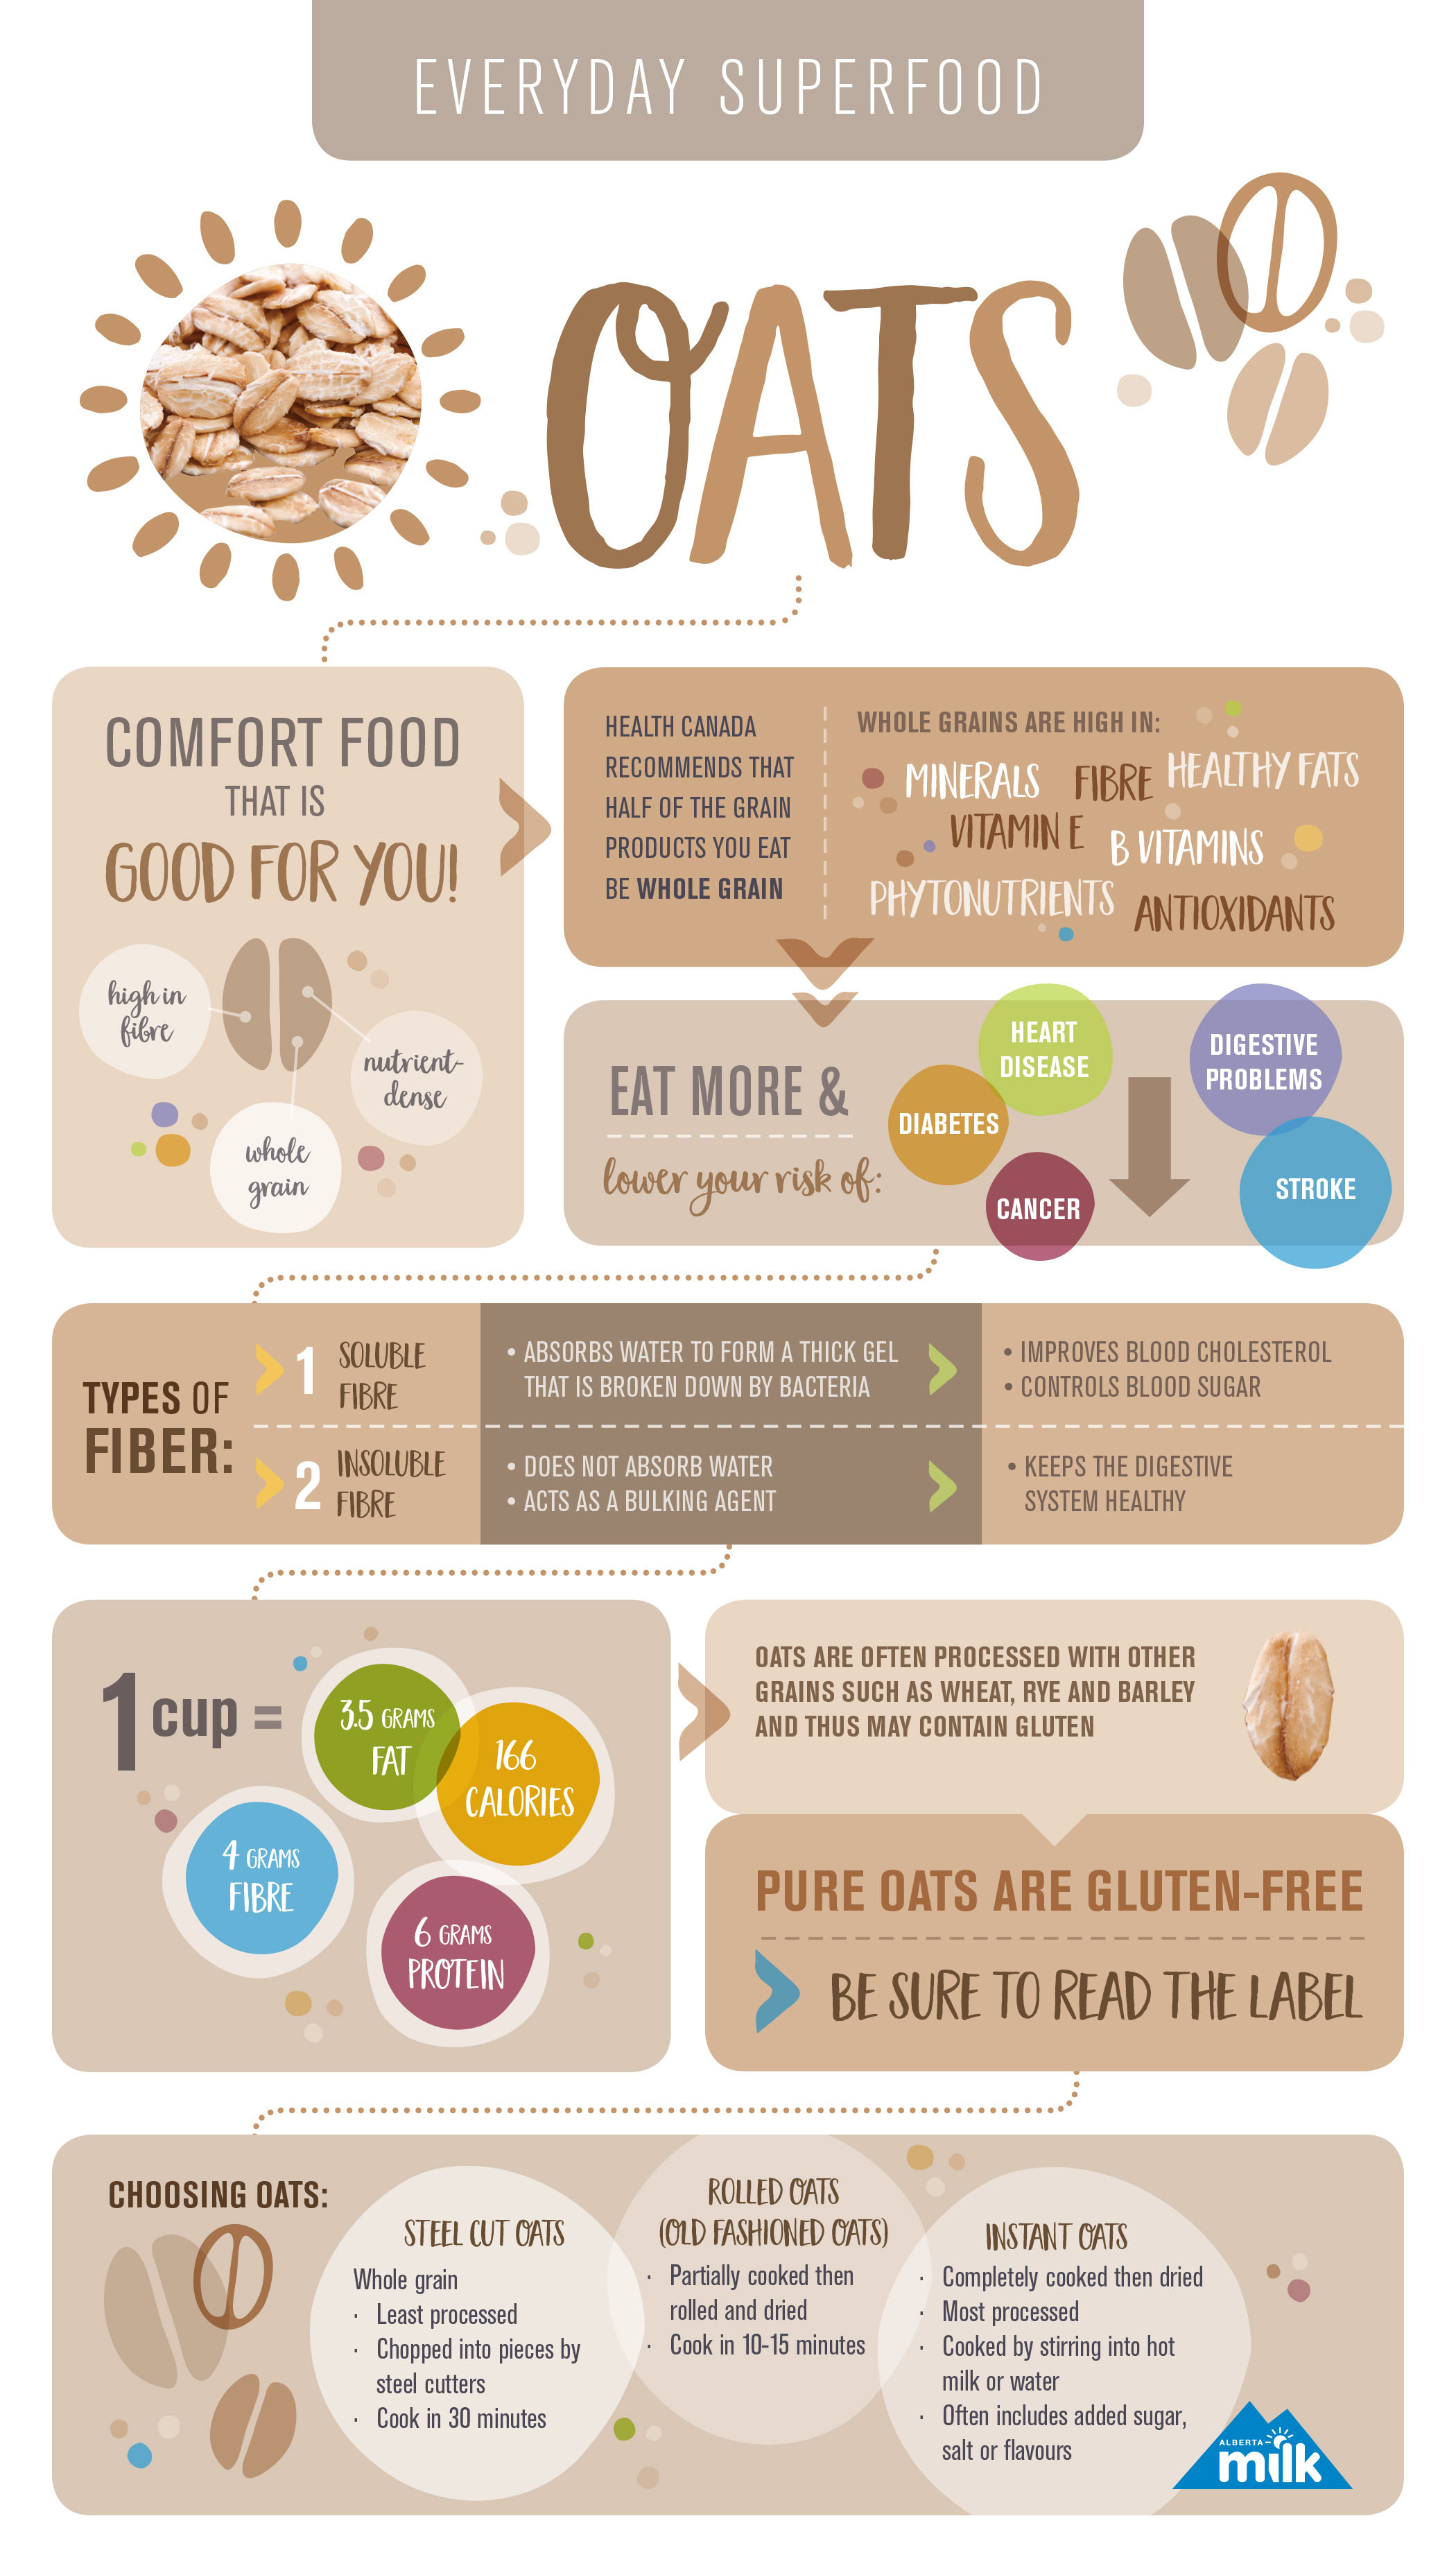 Everyday Superfood - Oat